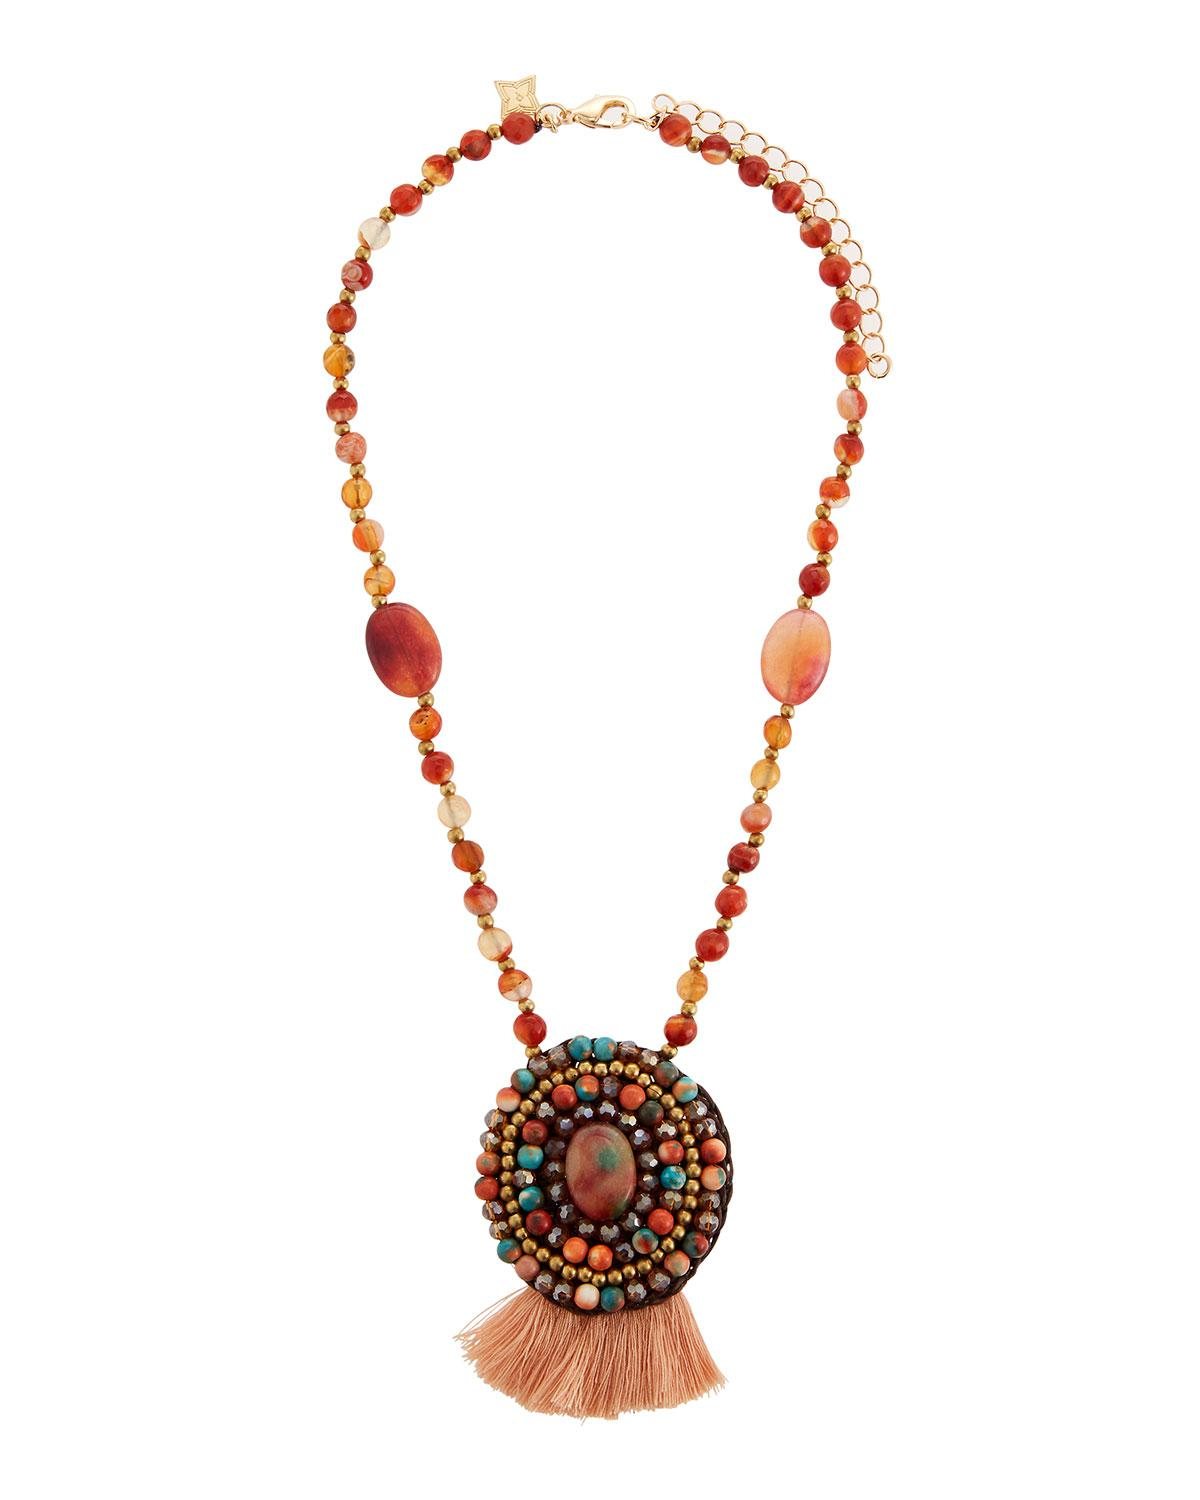 Panacea Stone & Dangles Pendant Necklace